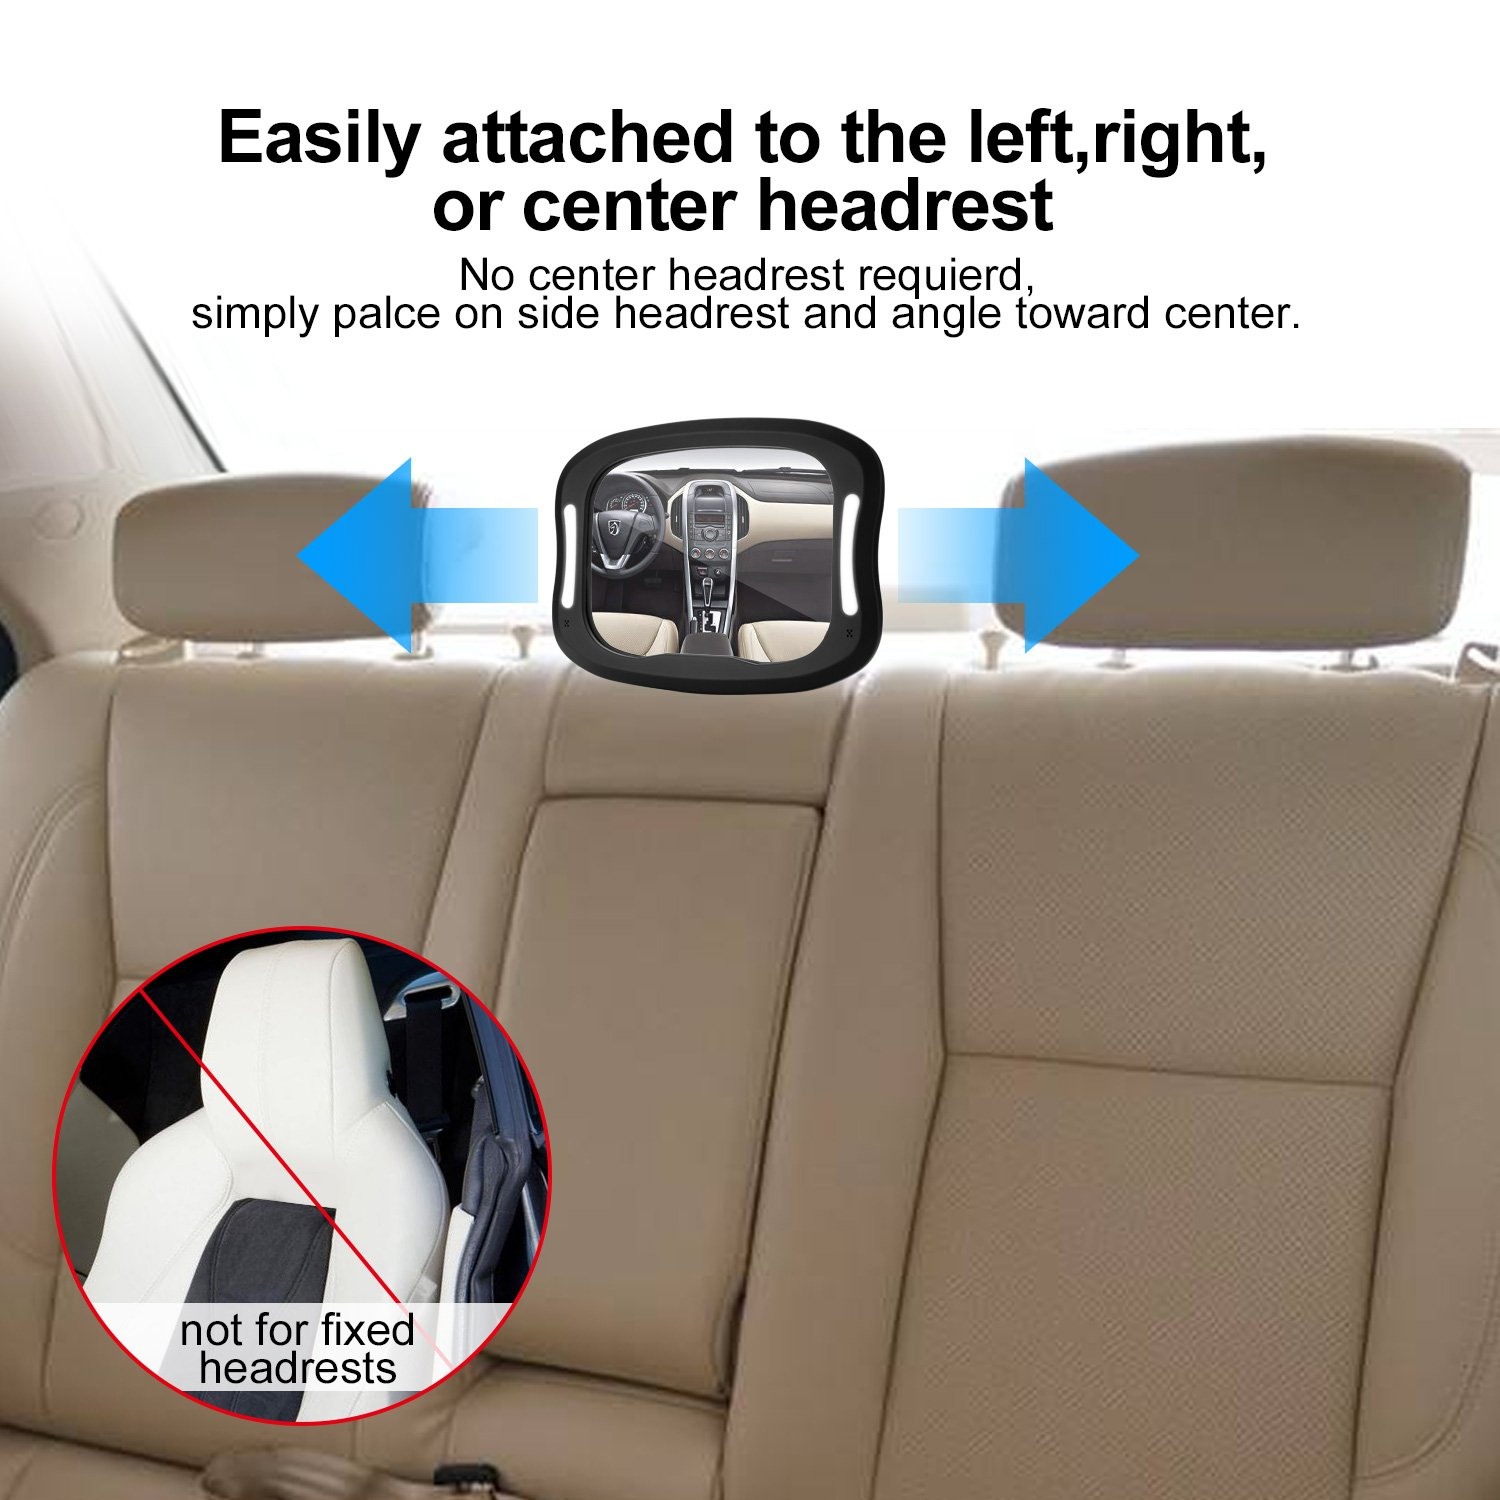 FITNATE LED Baby Car Mirror, Safety Infant in Backseat 360°Adjustable Light Up Mirror for Baby Rear with Best Newborn Secure 4 Sturdy Strips,Remote Control and 2 Car Sun Visors by FITNATE